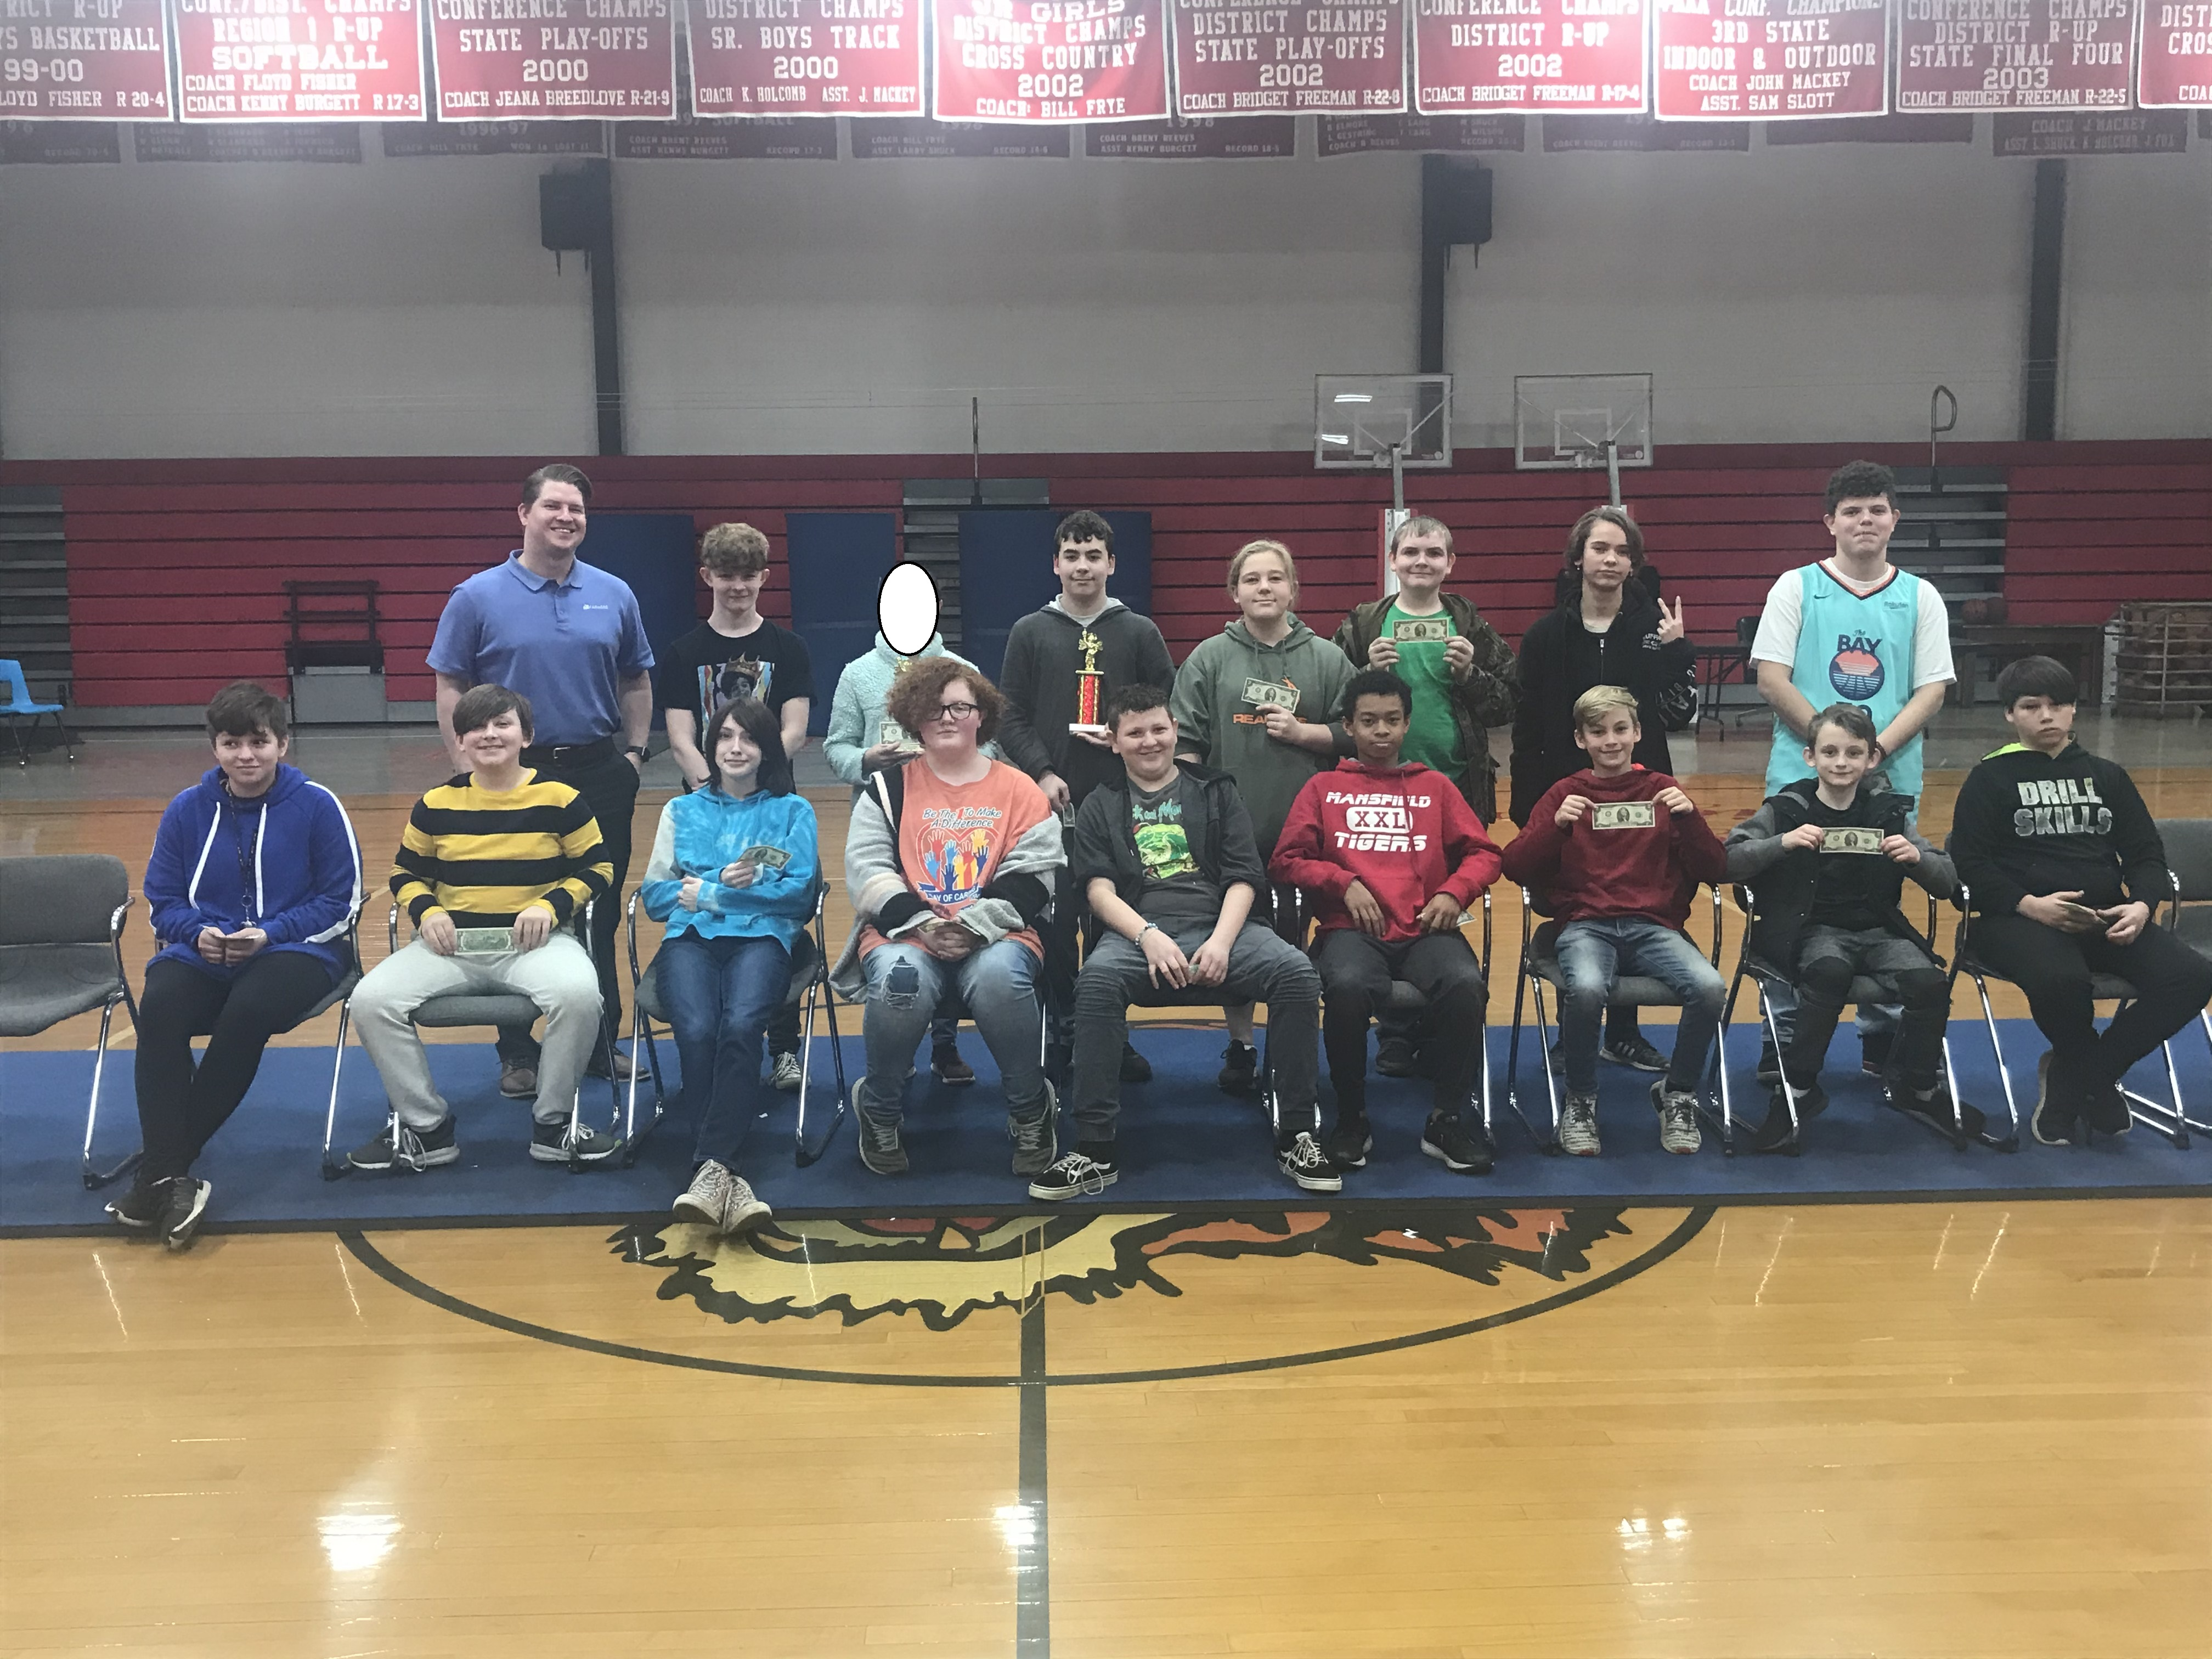 7/8 Spelling Bee Participants & their $2.00 from Farmer's Bank